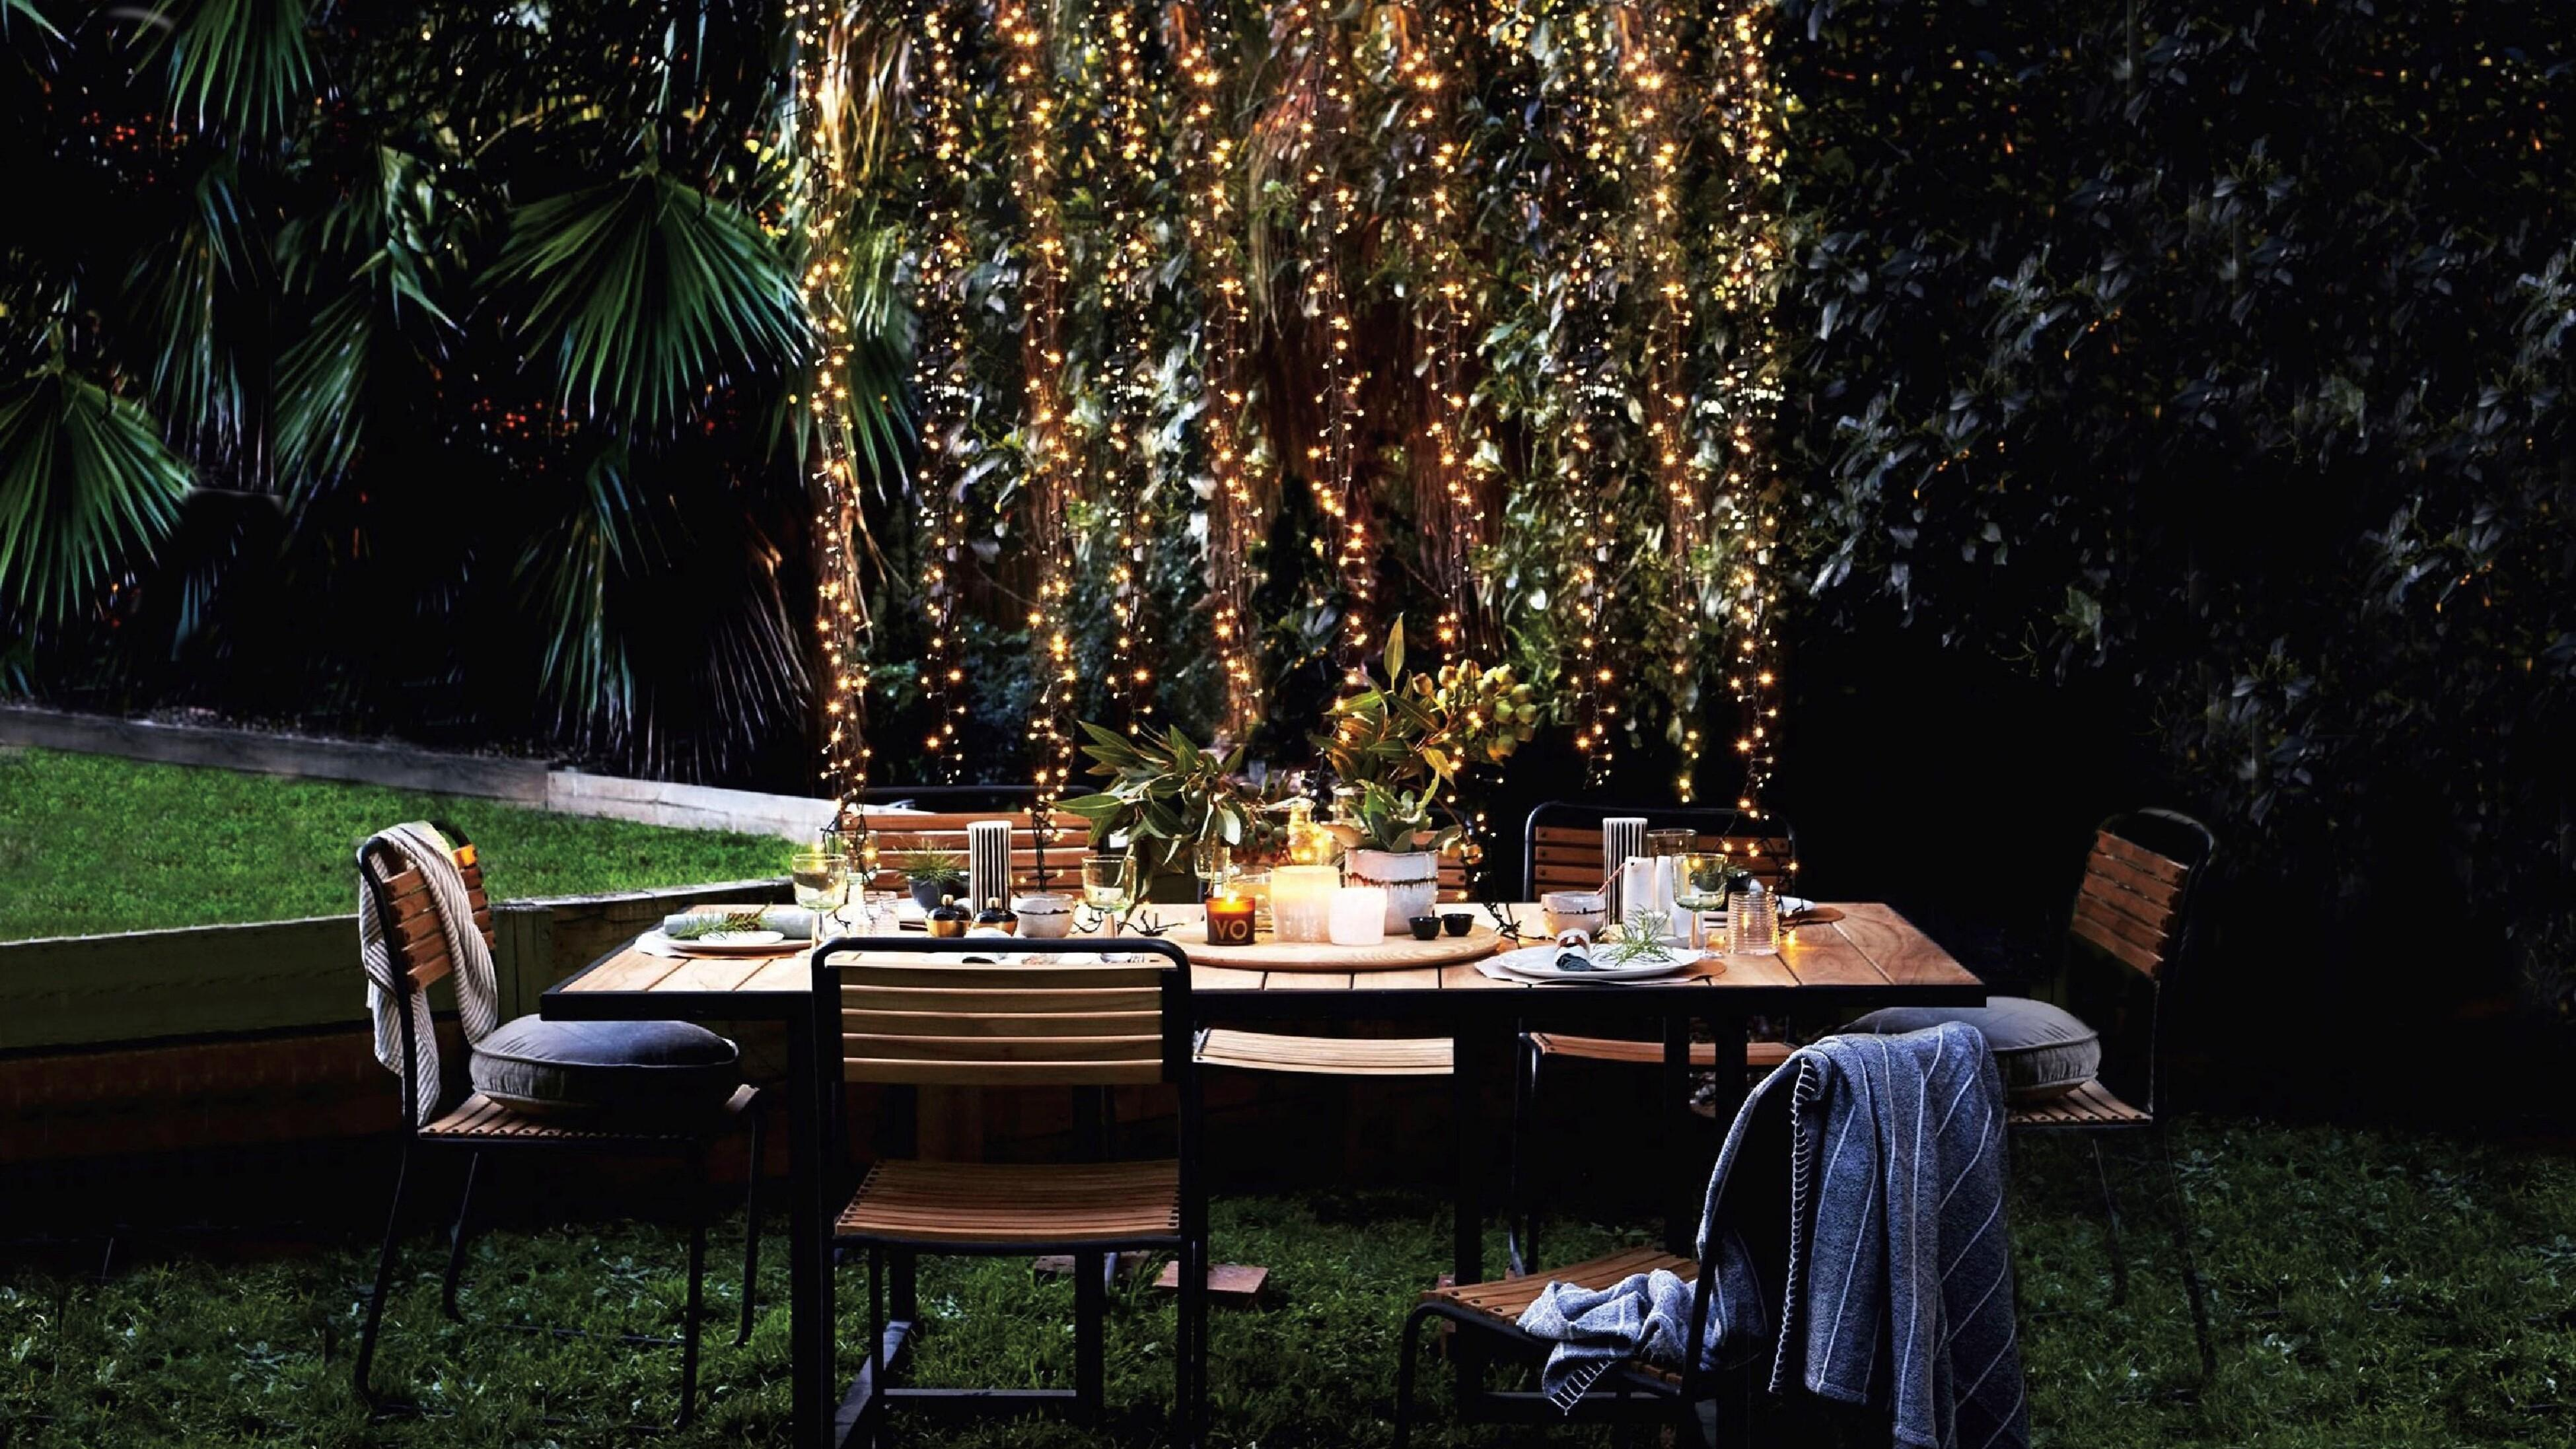 https www bunnings com au diy advice home improvement lighting electrical transform outdoor spaces with string lights